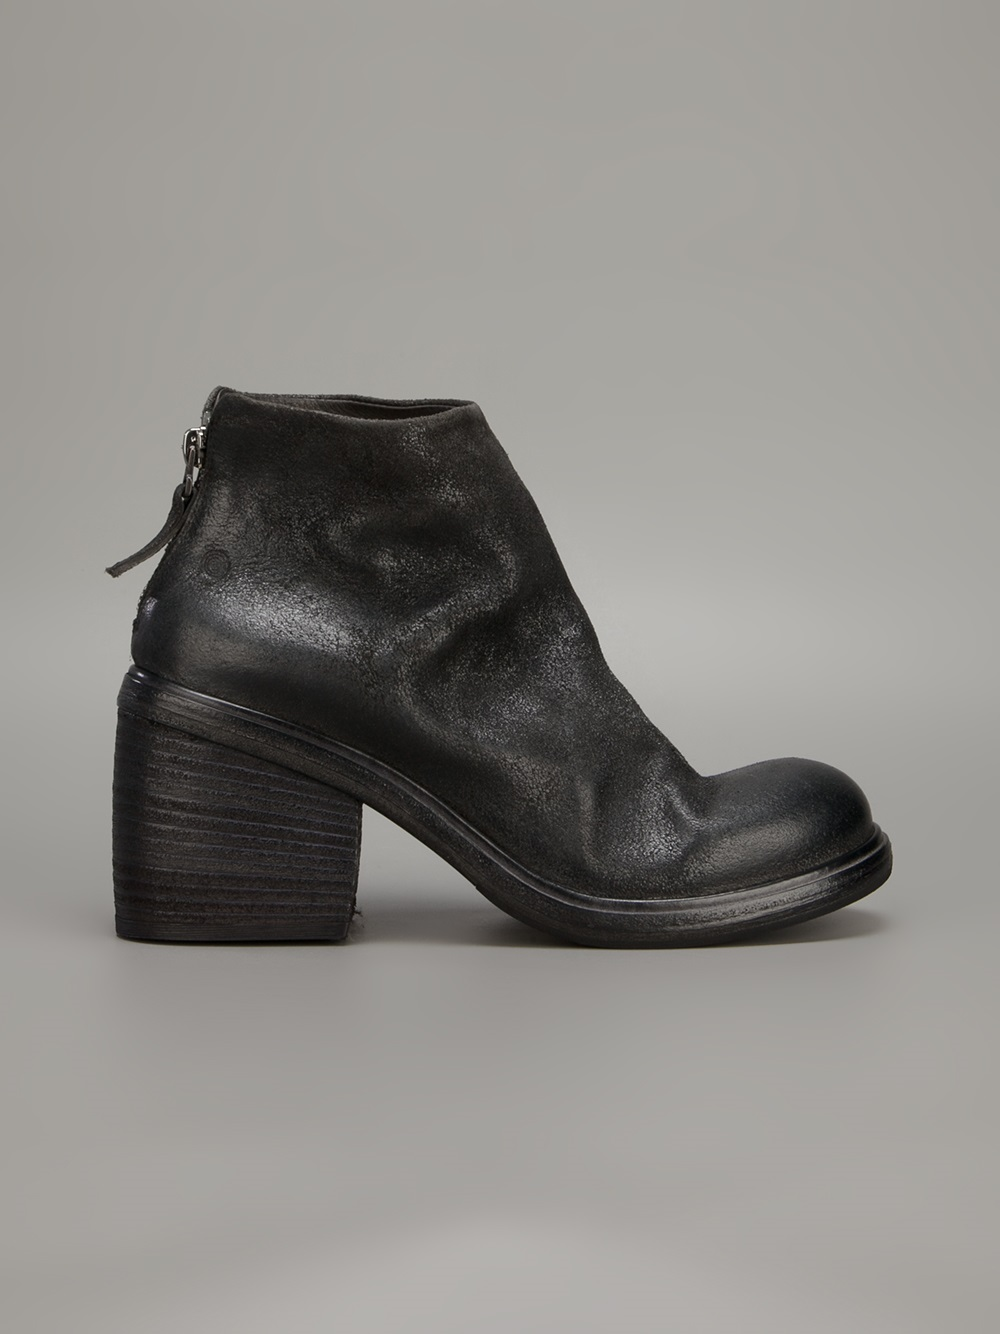 Marsèll Distressed Ankle Boots buy cheap shopping online outlet visa payment WOoAdw9tk